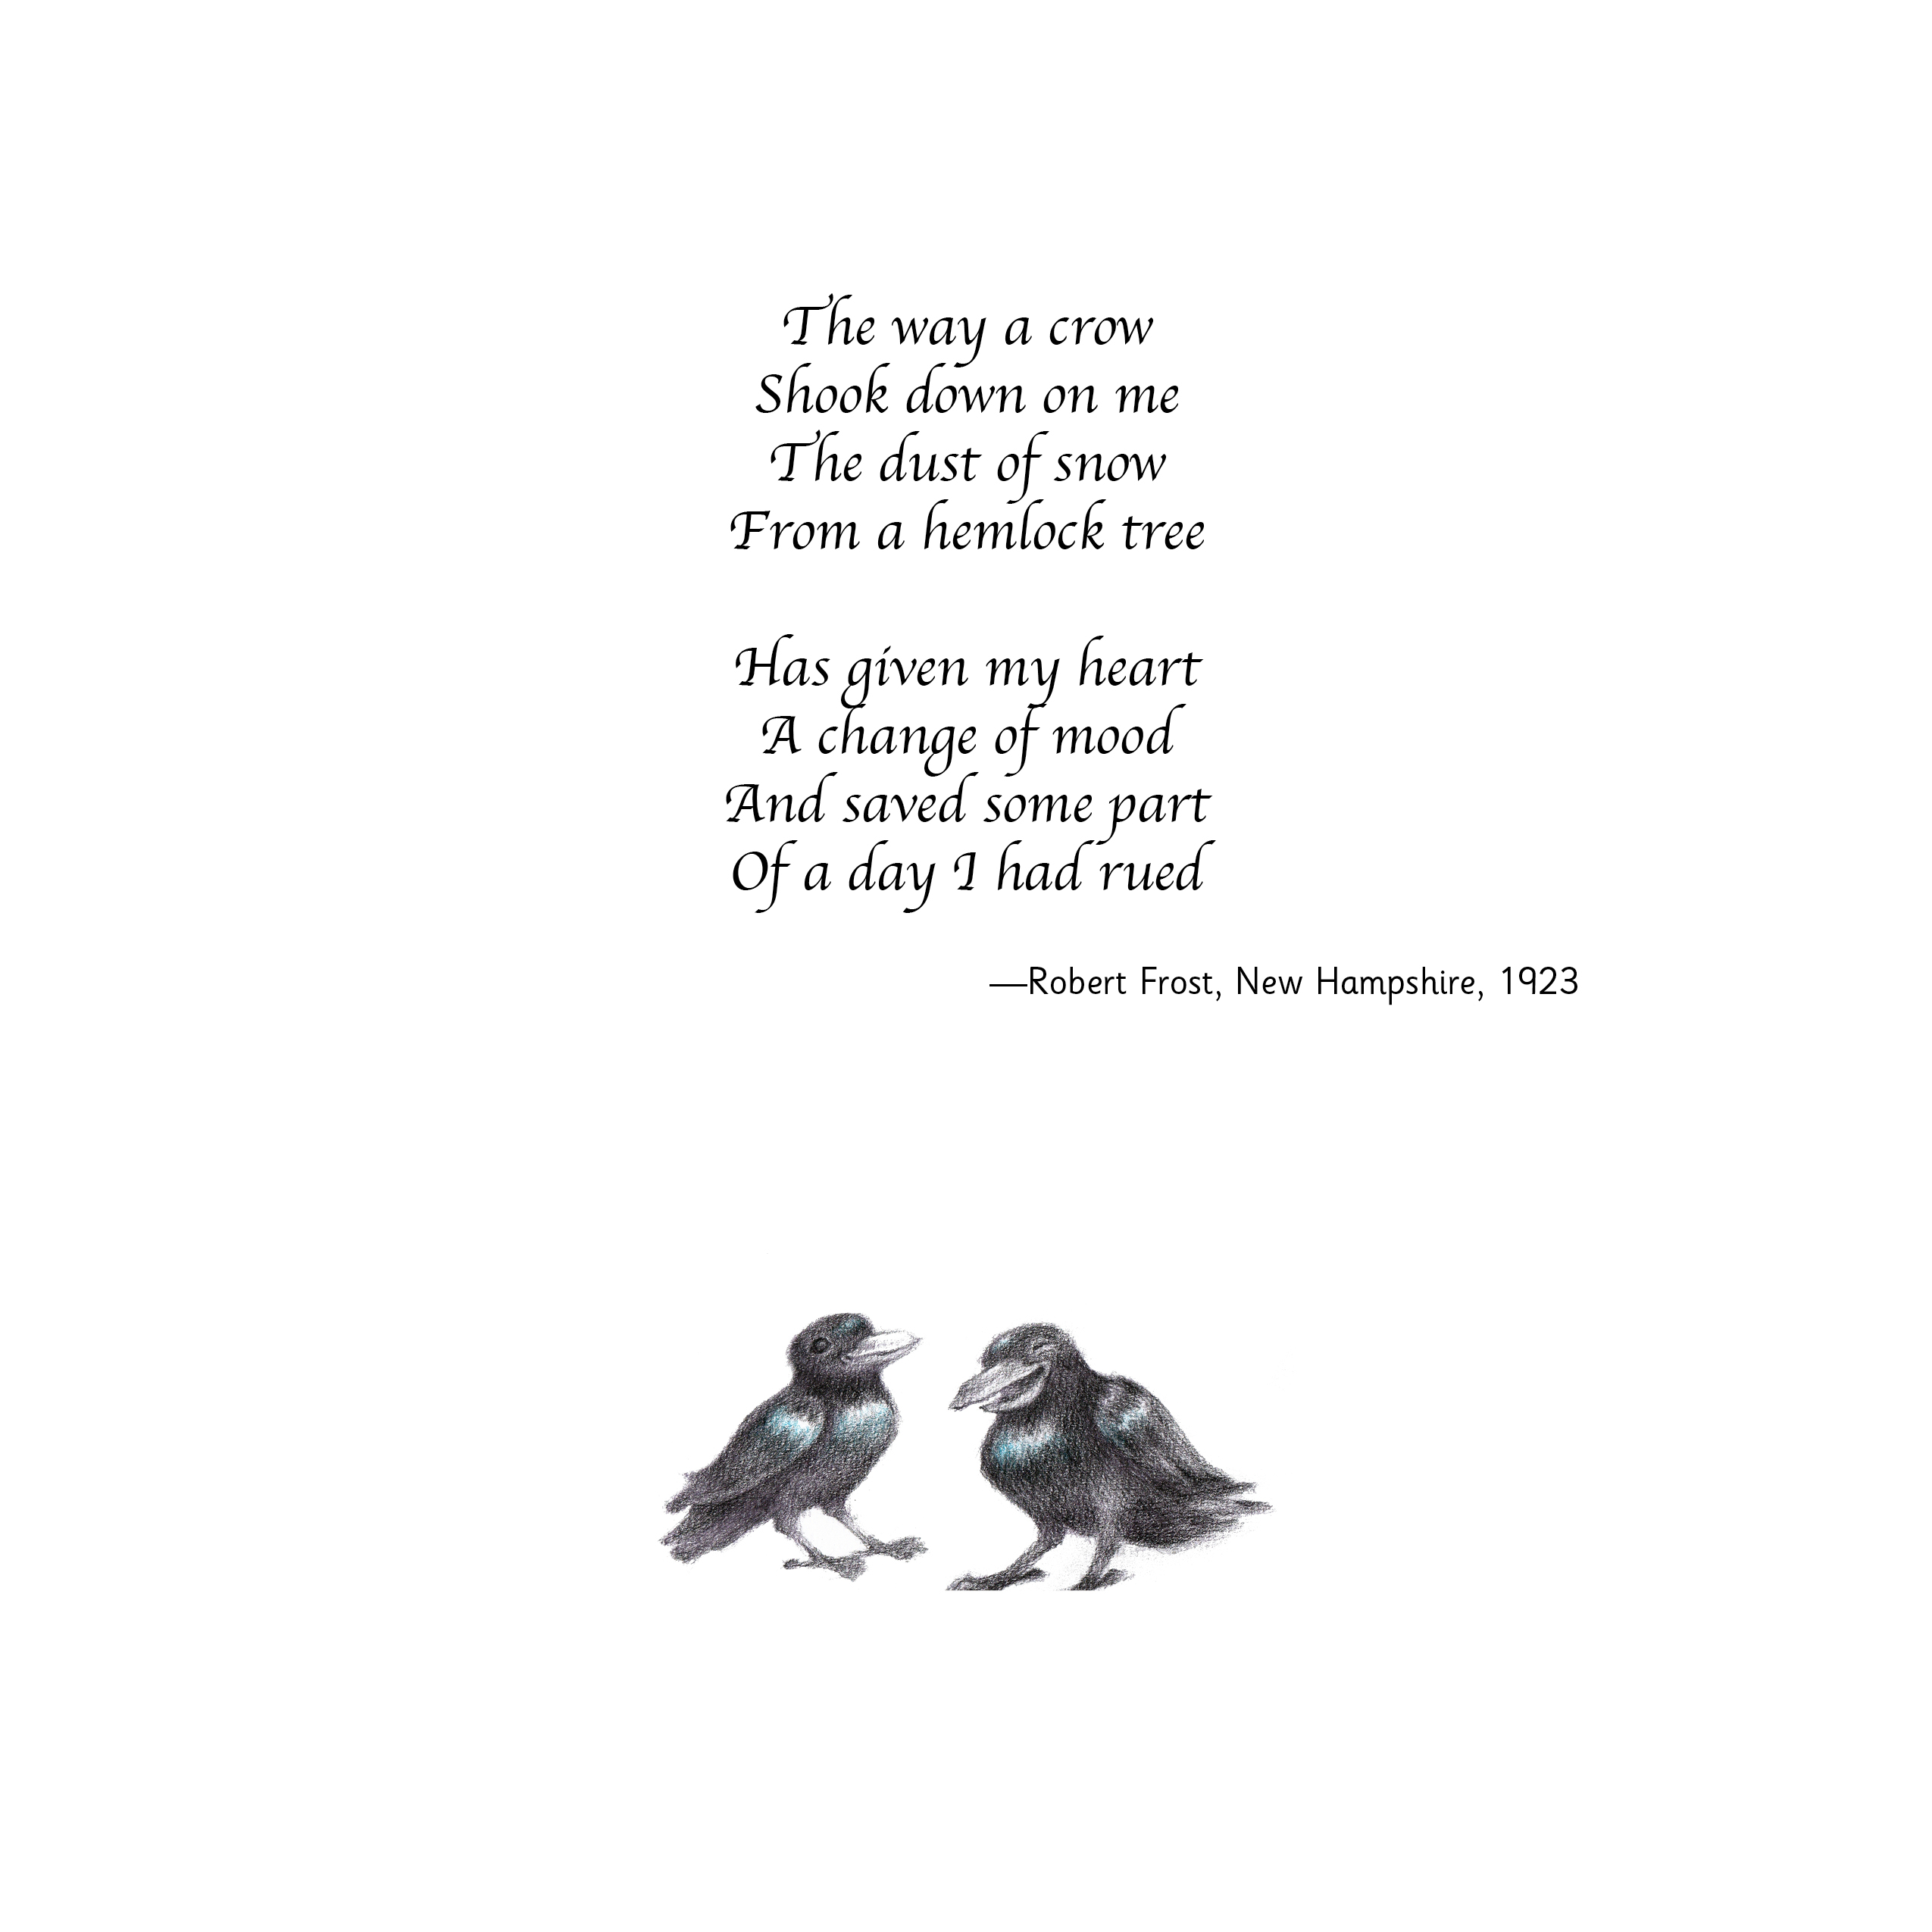 Fletcher and the Fledgling - Poem